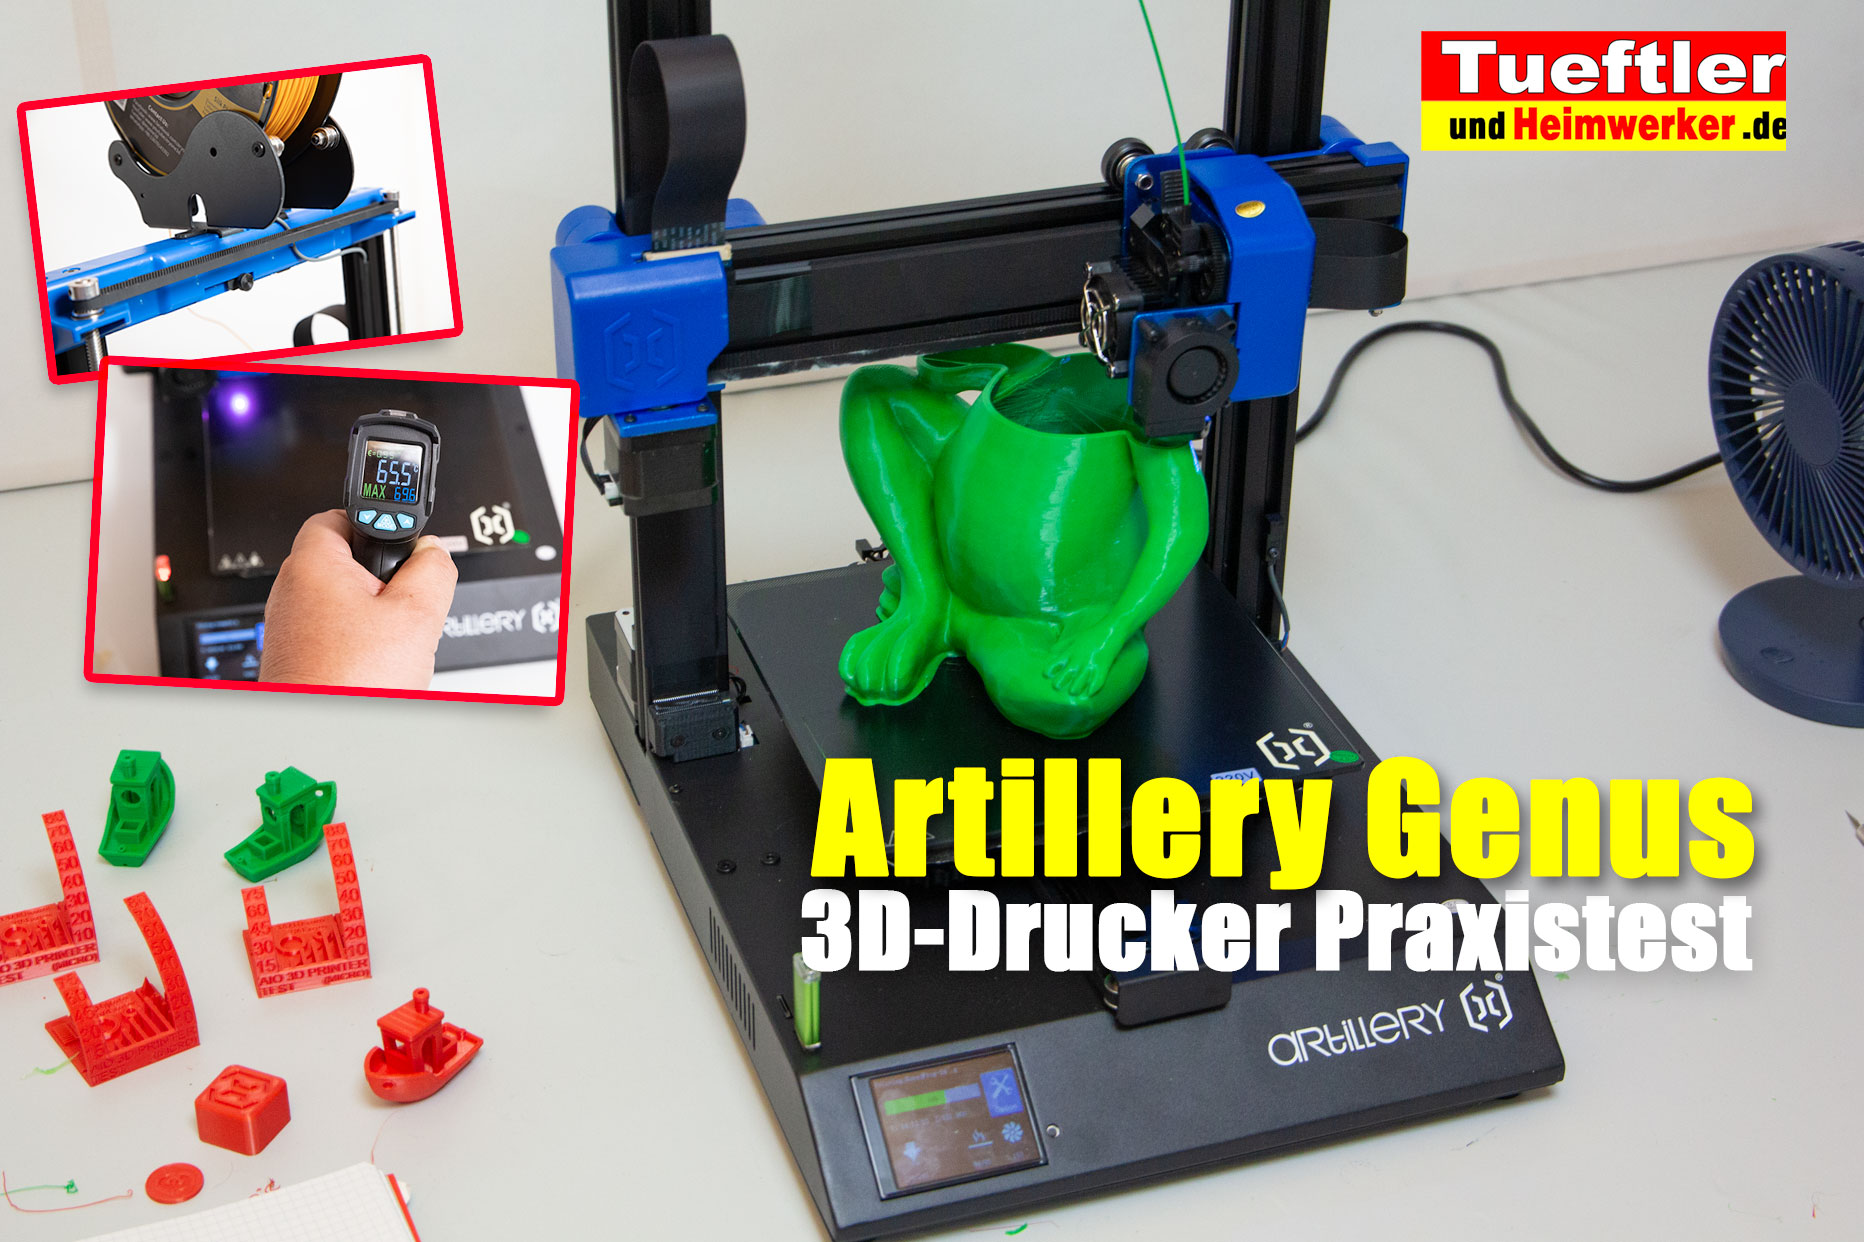 Artillery-Genius-Test-3D-Drucker-Praxistest.jpg